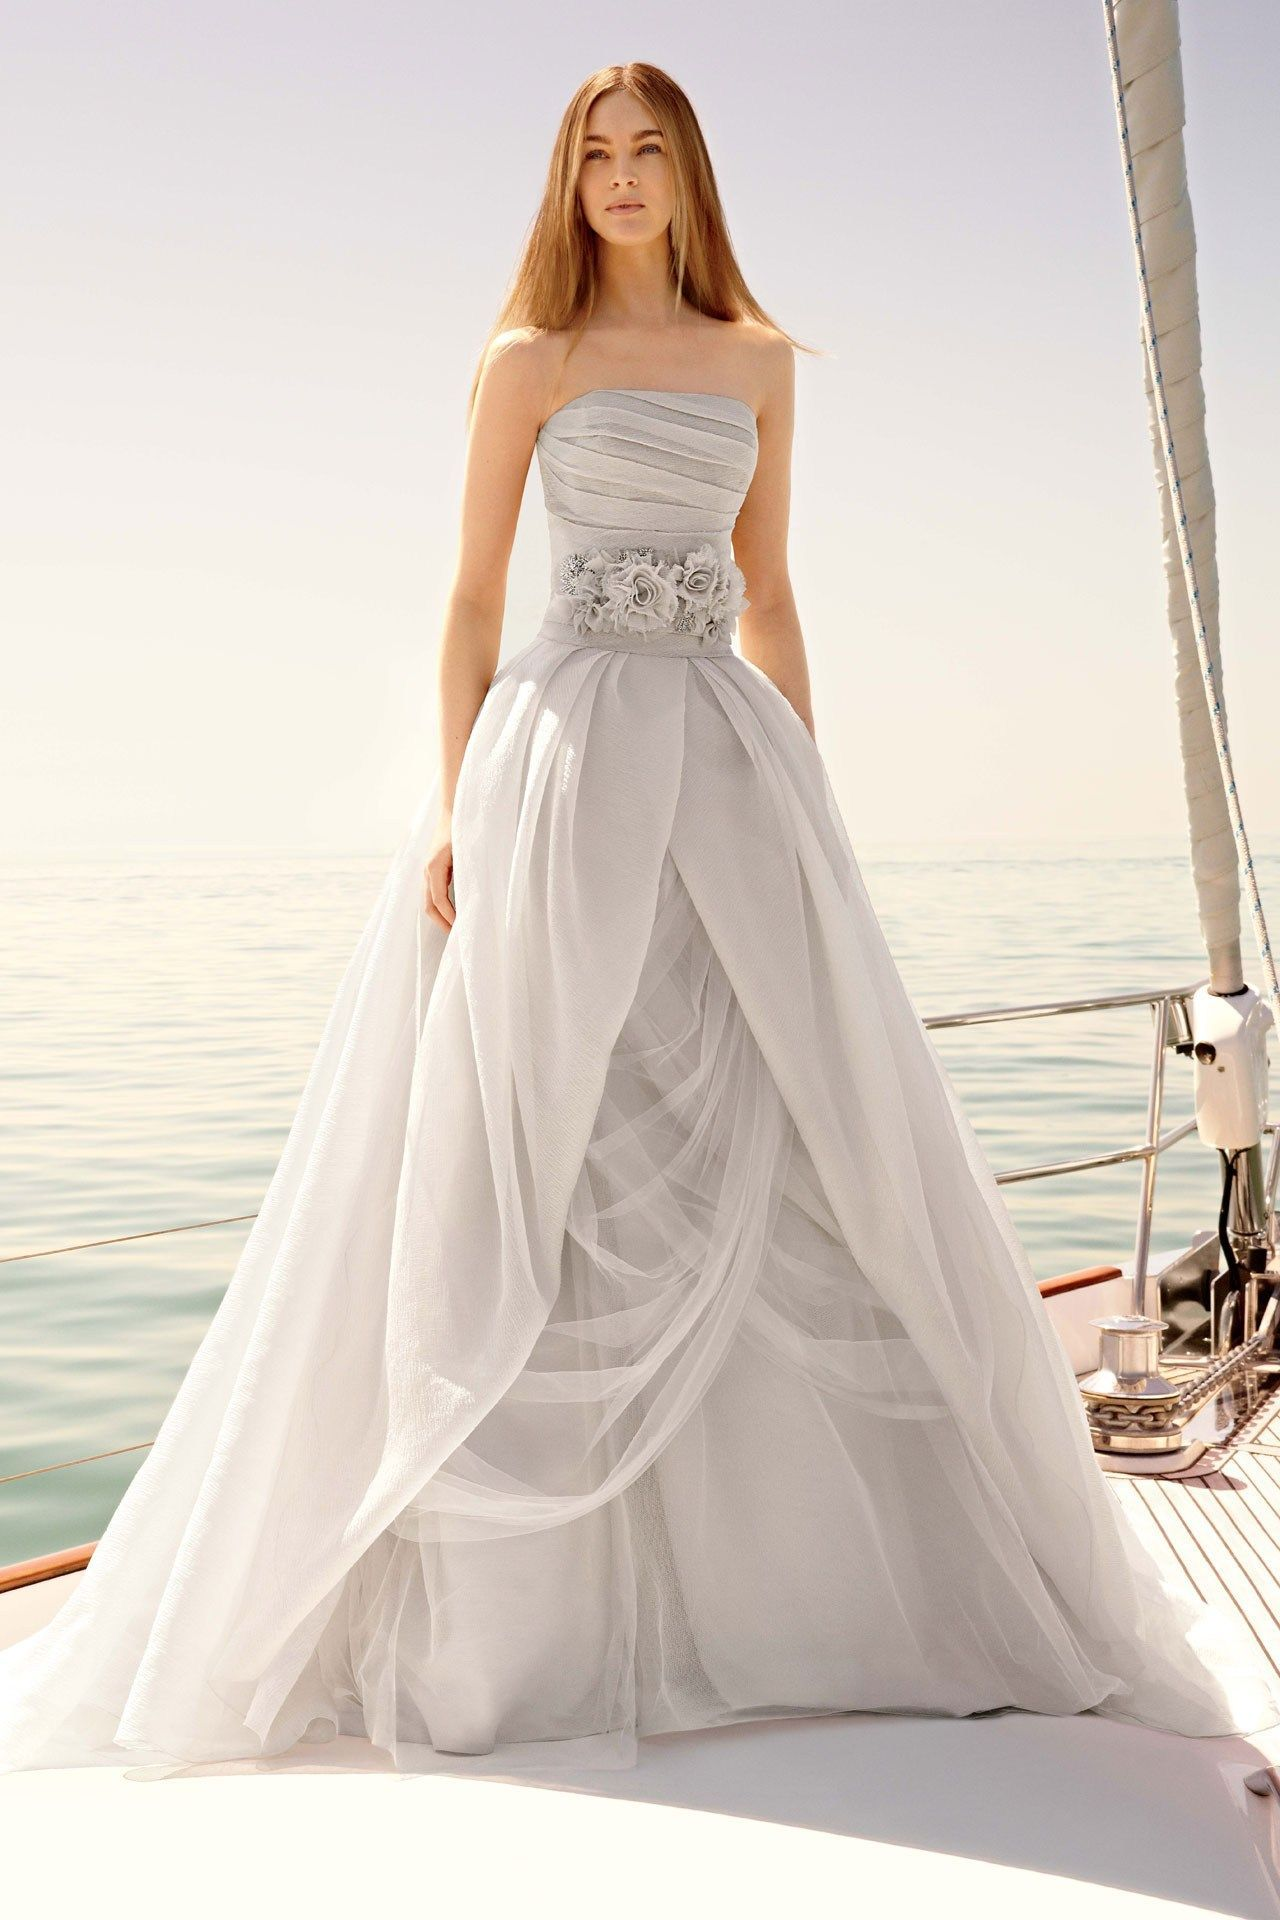 Best dresses to wear to a wedding  OMG Best Designer Wedding Dresses  WOULD LOVE TO WEAR  Pinterest